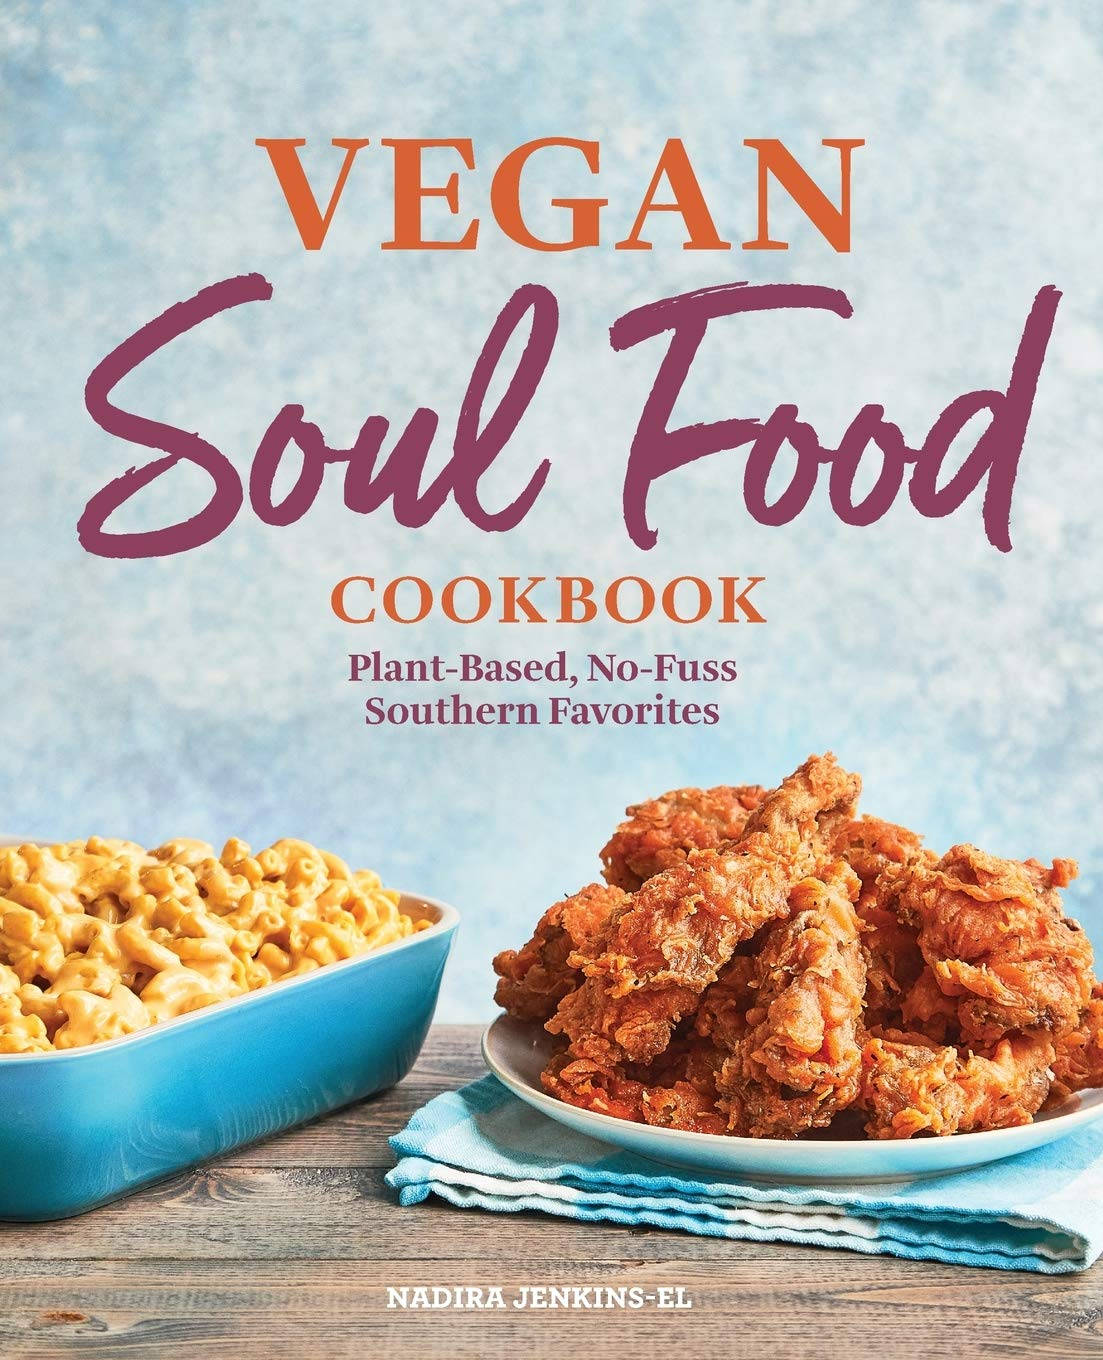 Vegan Soul Food Cookbook: Plant-Based, No-Fuss Southern Favorites